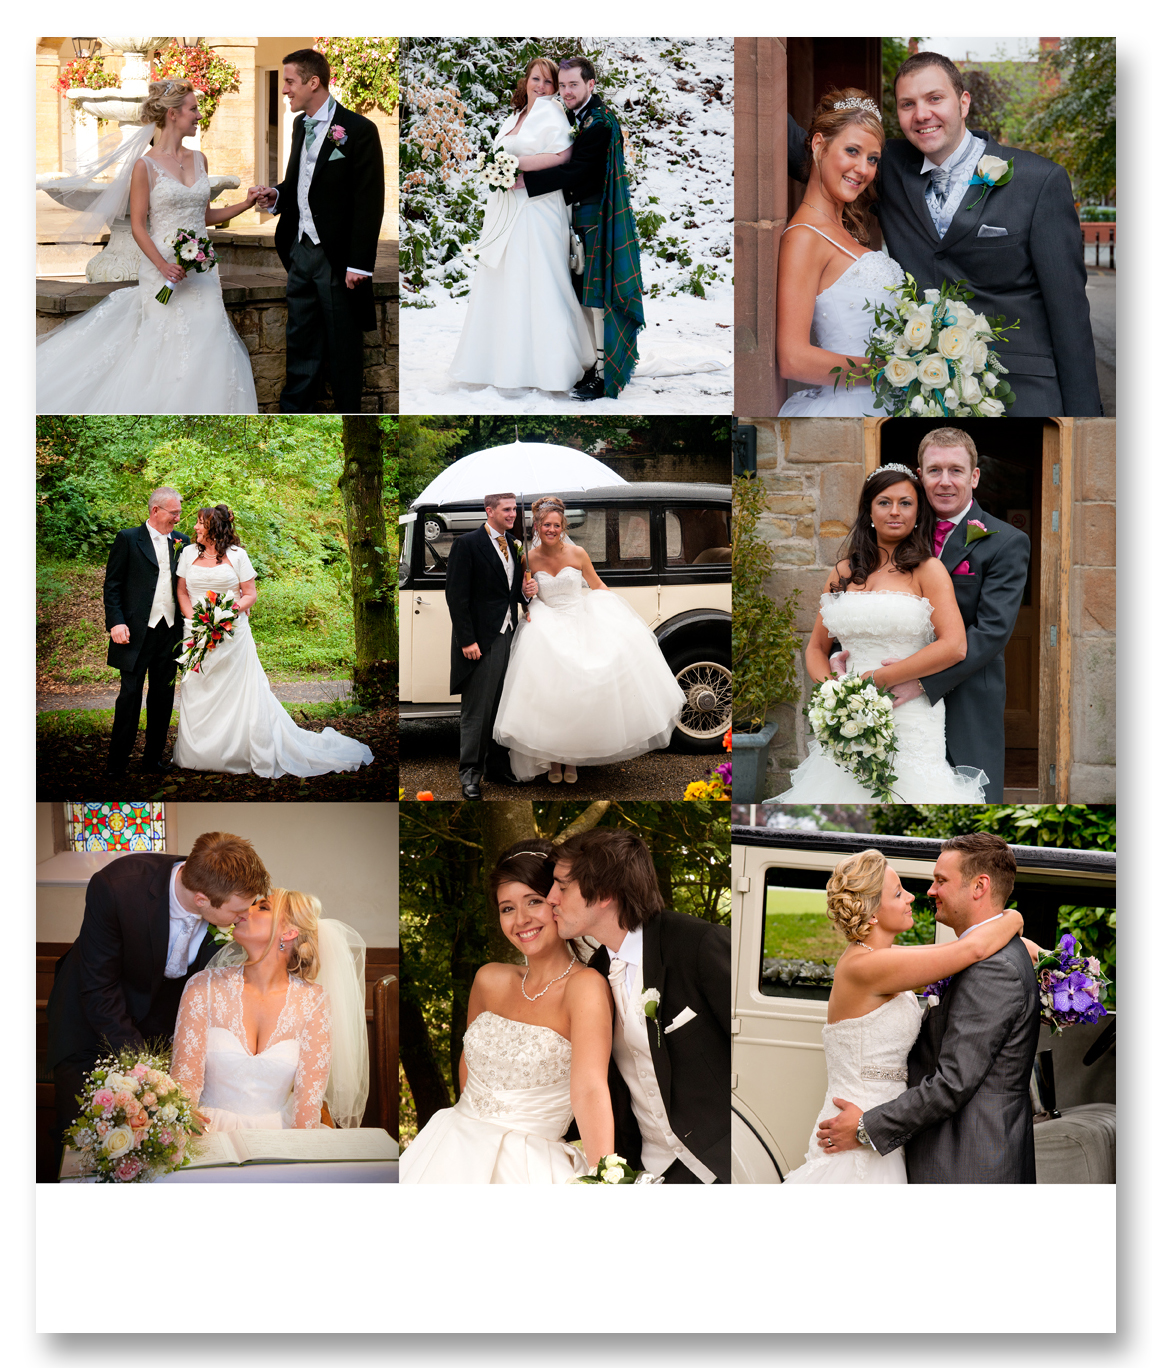 Affordable Wedding Photography.Photograhy Blackburn Blackburn Photographer Affordable Wedding